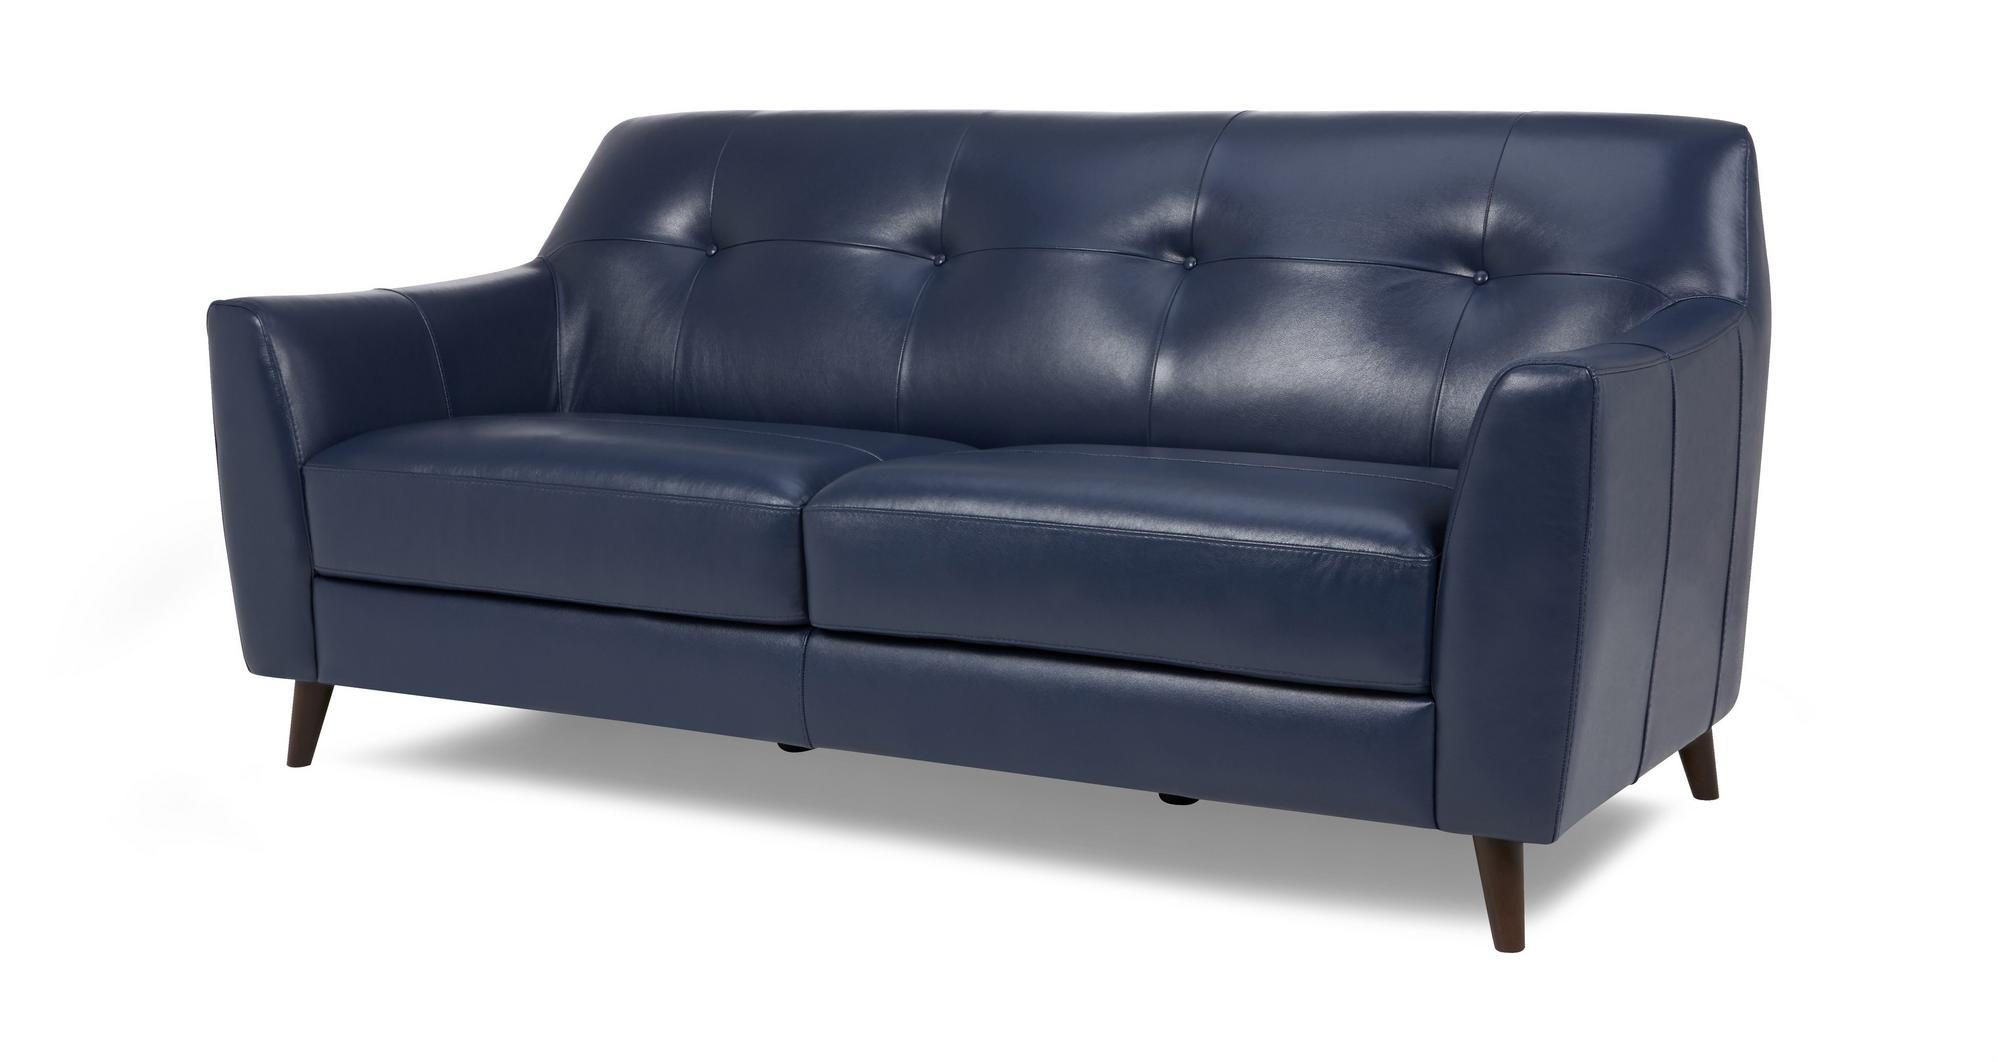 DFS Ritchie Ocean Blue 100% Leather 3 Seater Sofa